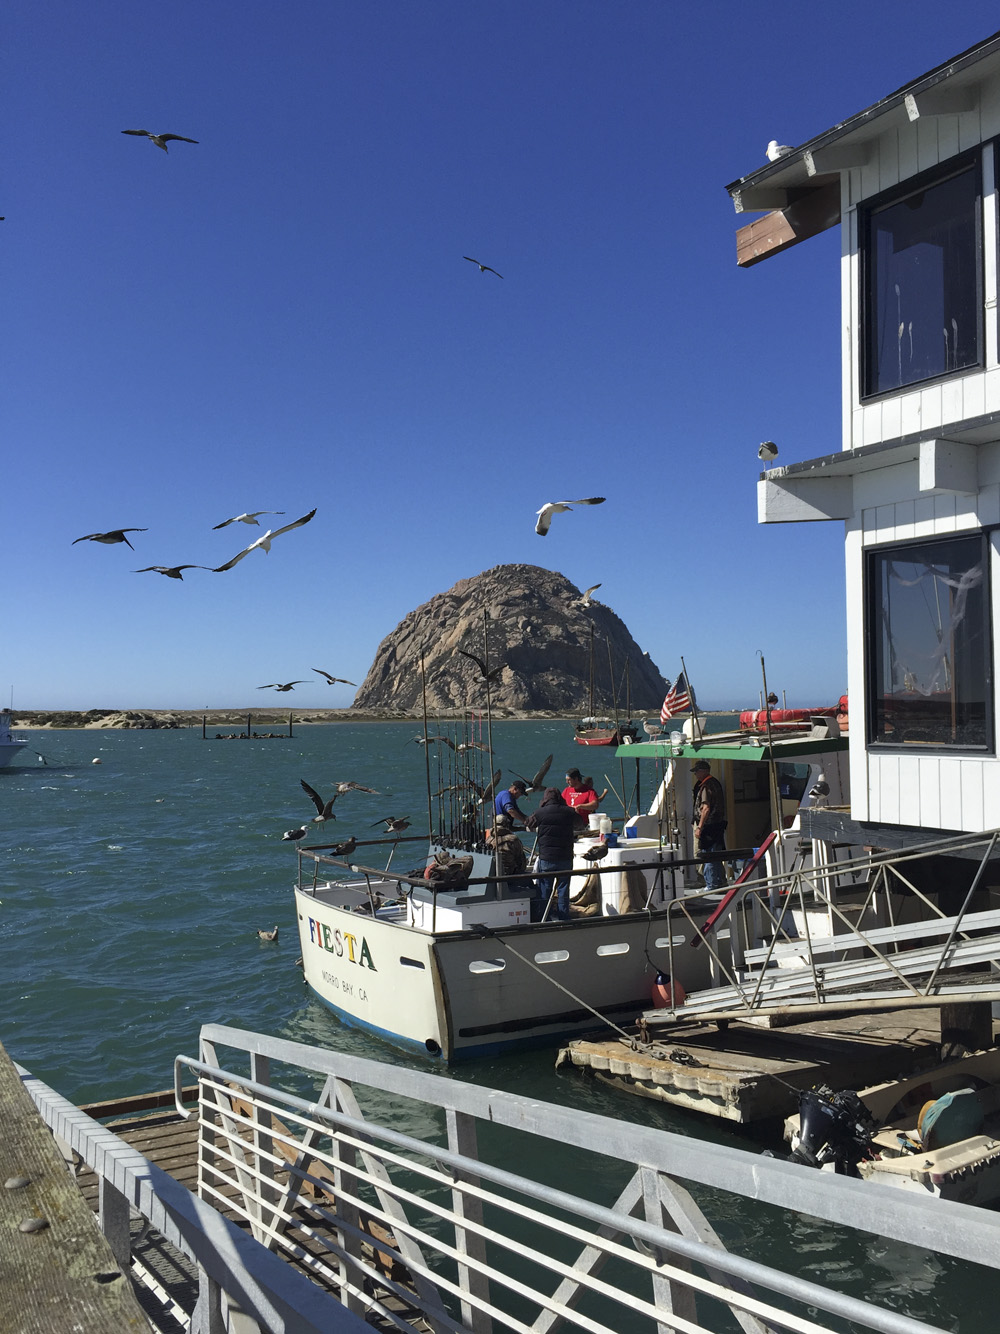 Morro Bay Rock & Seagulls